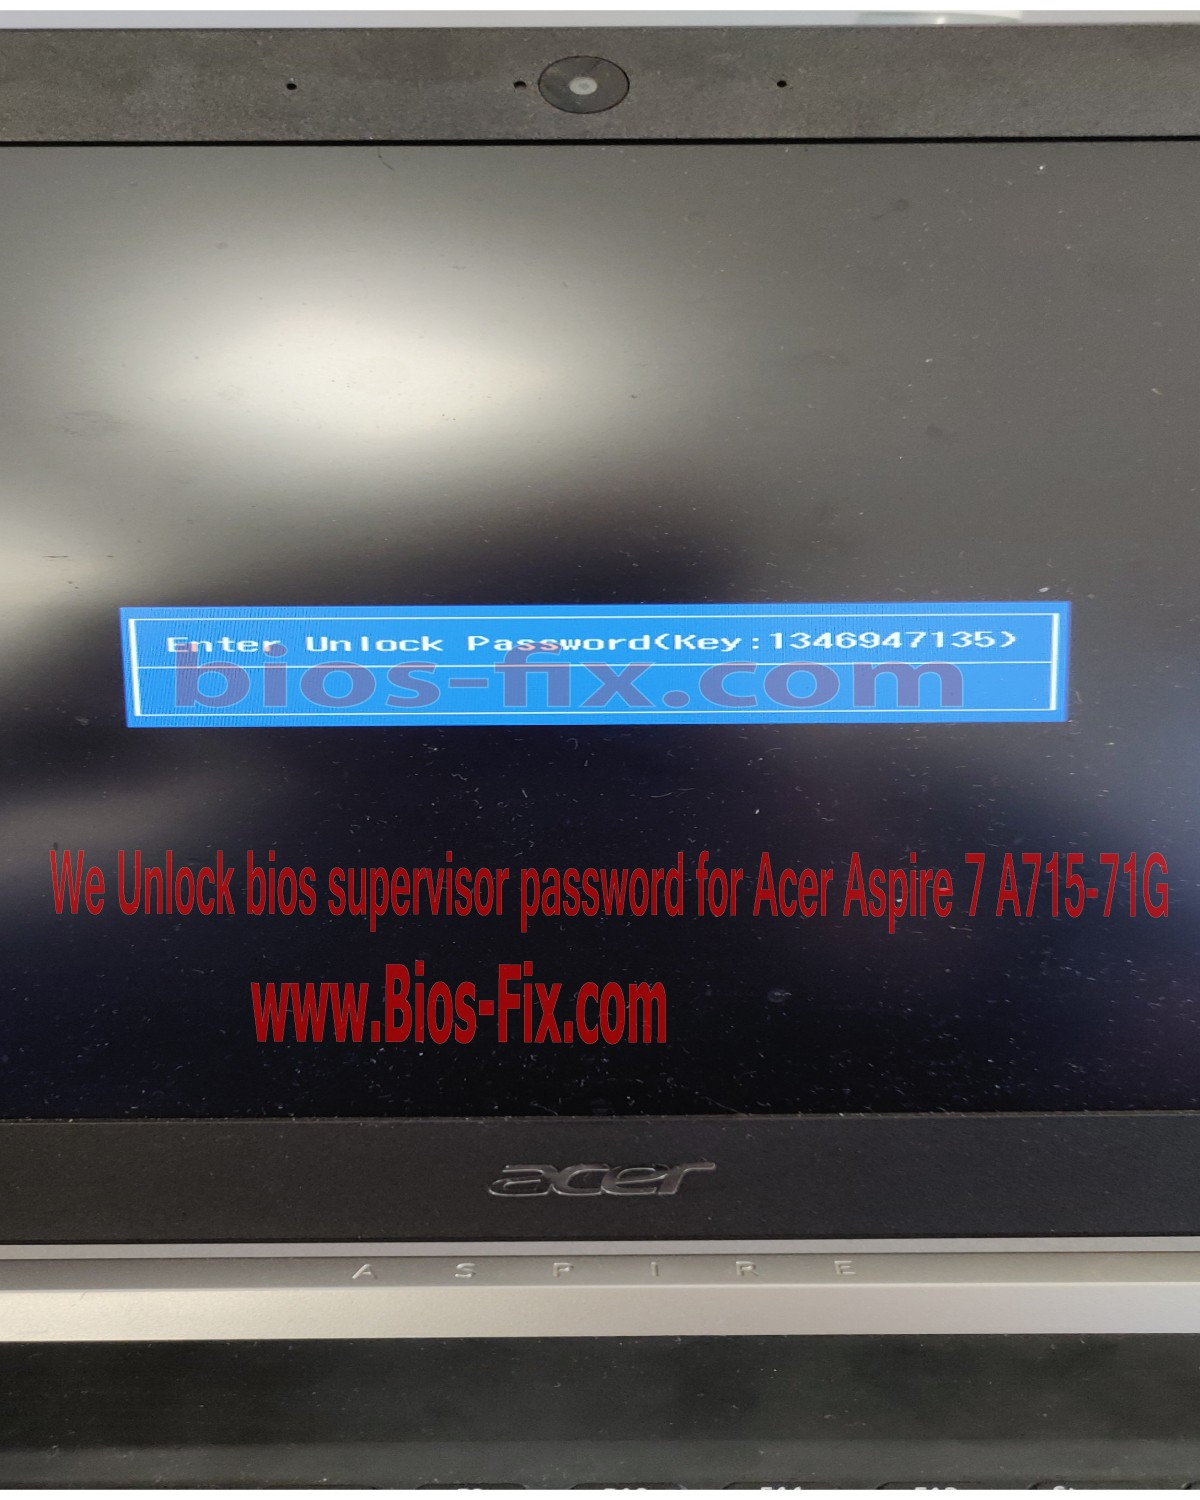 Unlock-bios-supervisor-password-for-Acer-Aspire-7-A715-71G.jpg